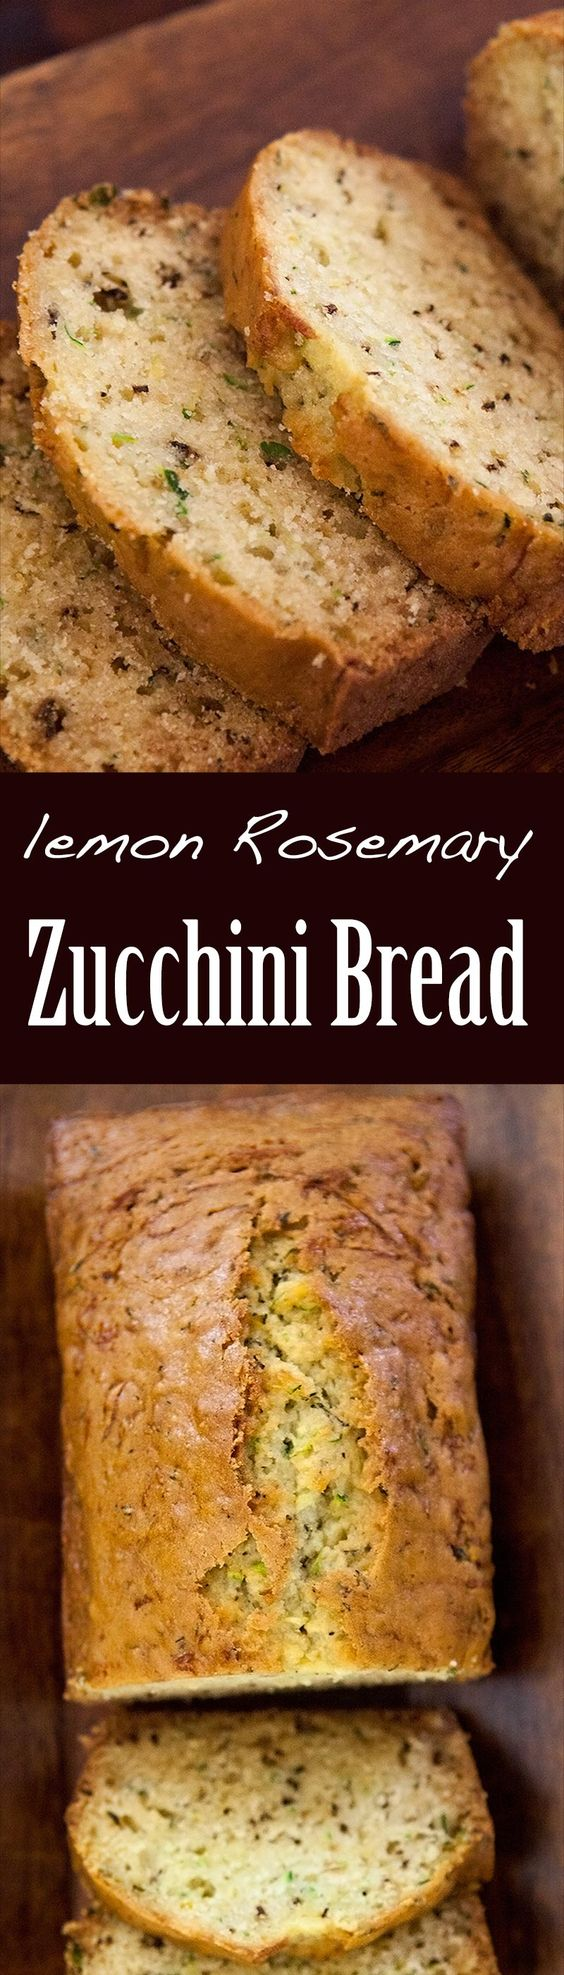 Zucchini, Breads and Twists on Pinterest